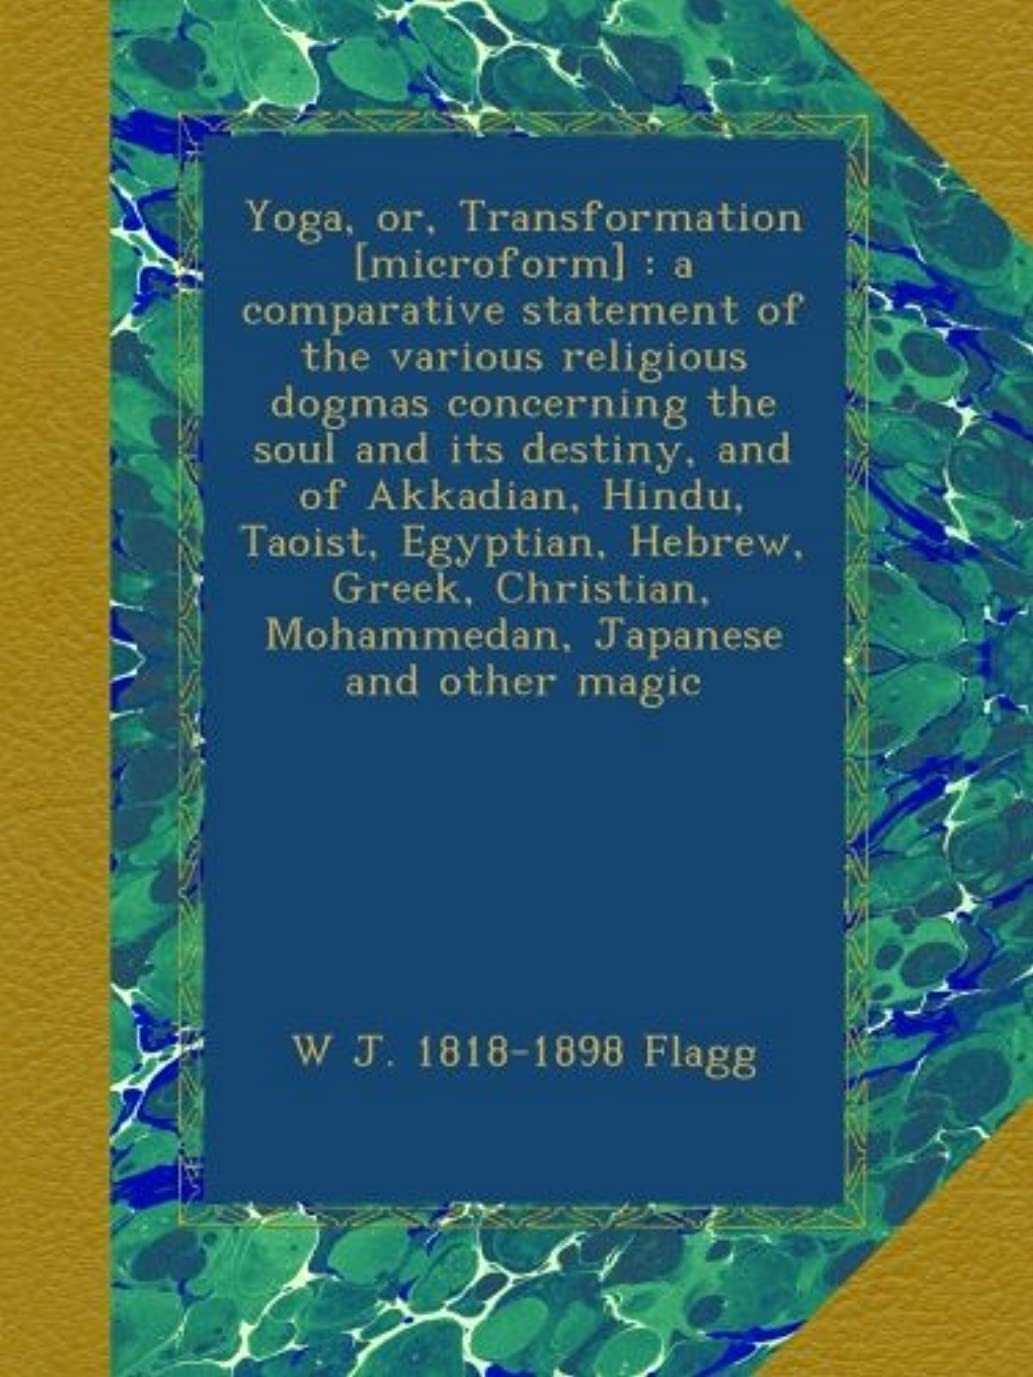 討論決定するポップYoga, or, Transformation [microform] : a comparative statement of the various religious dogmas concerning the soul and its destiny, and of Akkadian, Hindu, Taoist, Egyptian, Hebrew, Greek, Christian, Mohammedan, Japanese and other magic